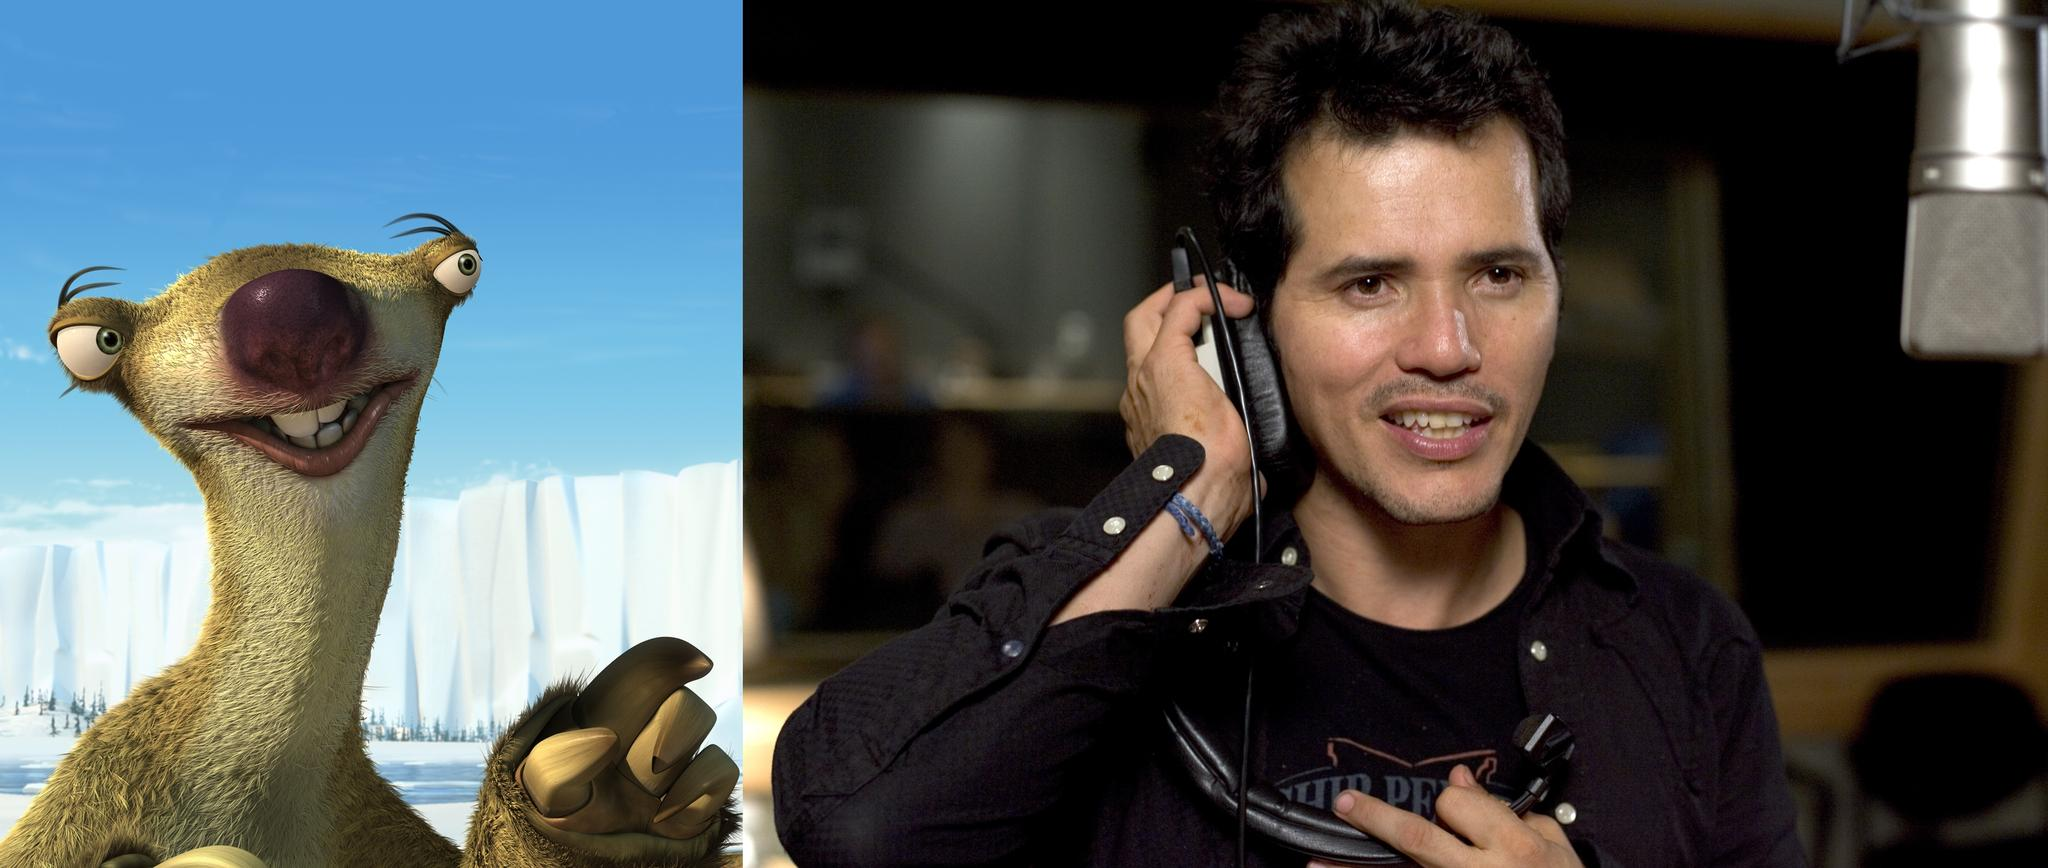 sid from ice age actor